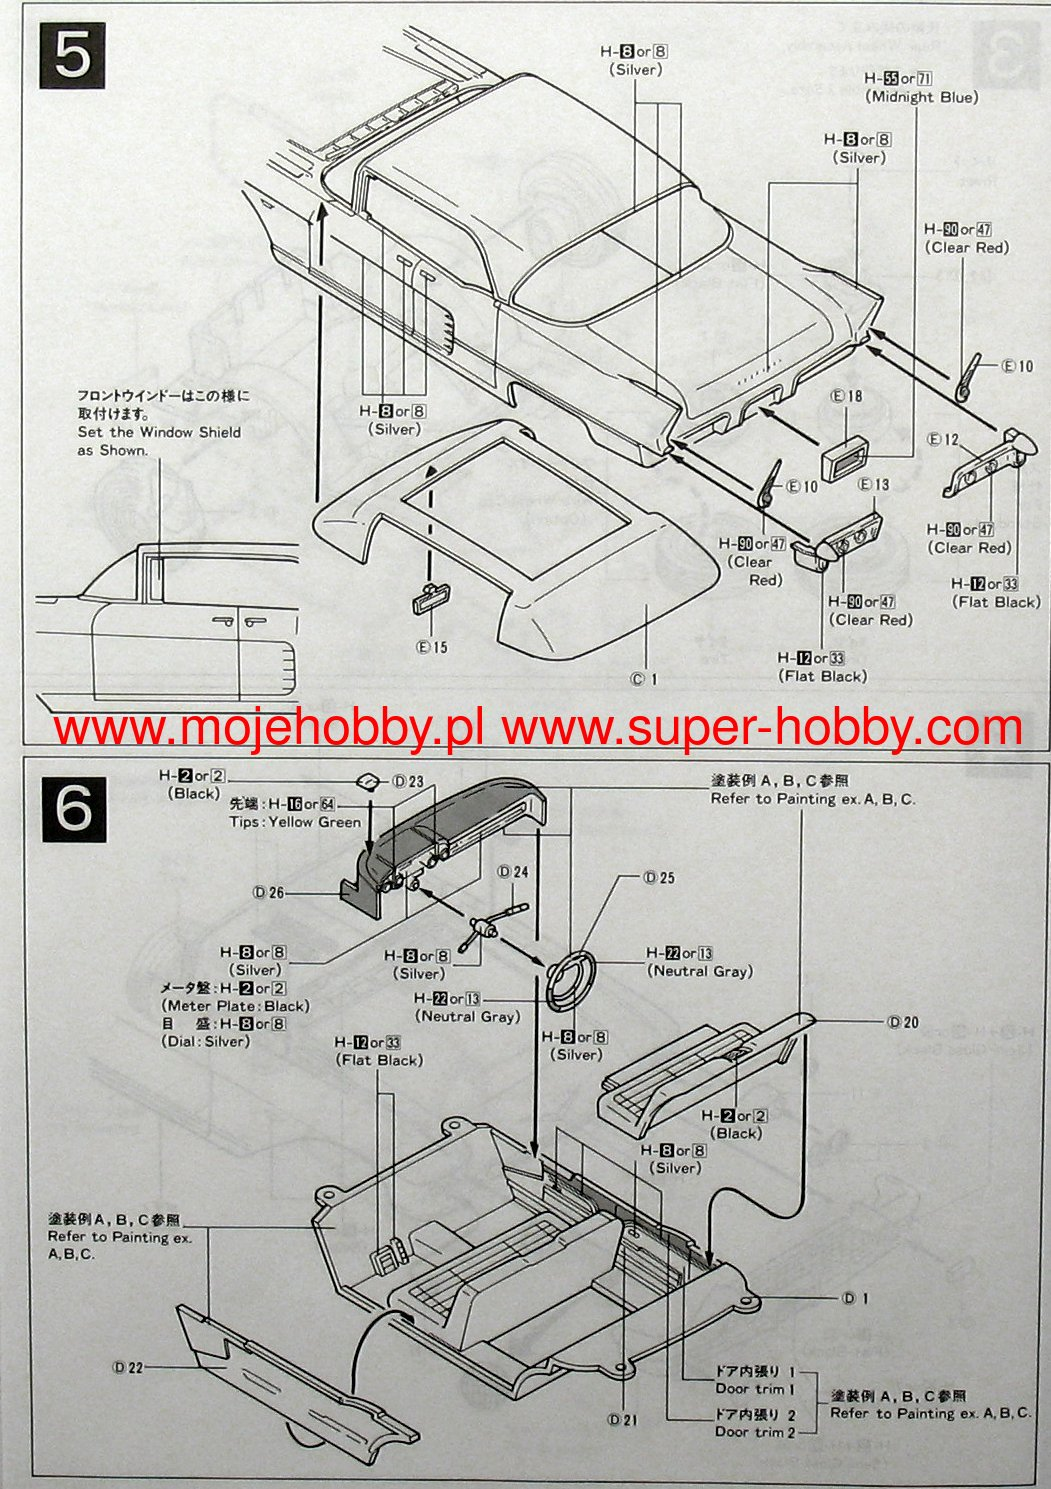 57 Cadillac Eldorado Brougham Wiring Diagram 44 1959 Harness 16212 2 Gun G174 4 1957 Mr Hobby G 174 70 At Cita